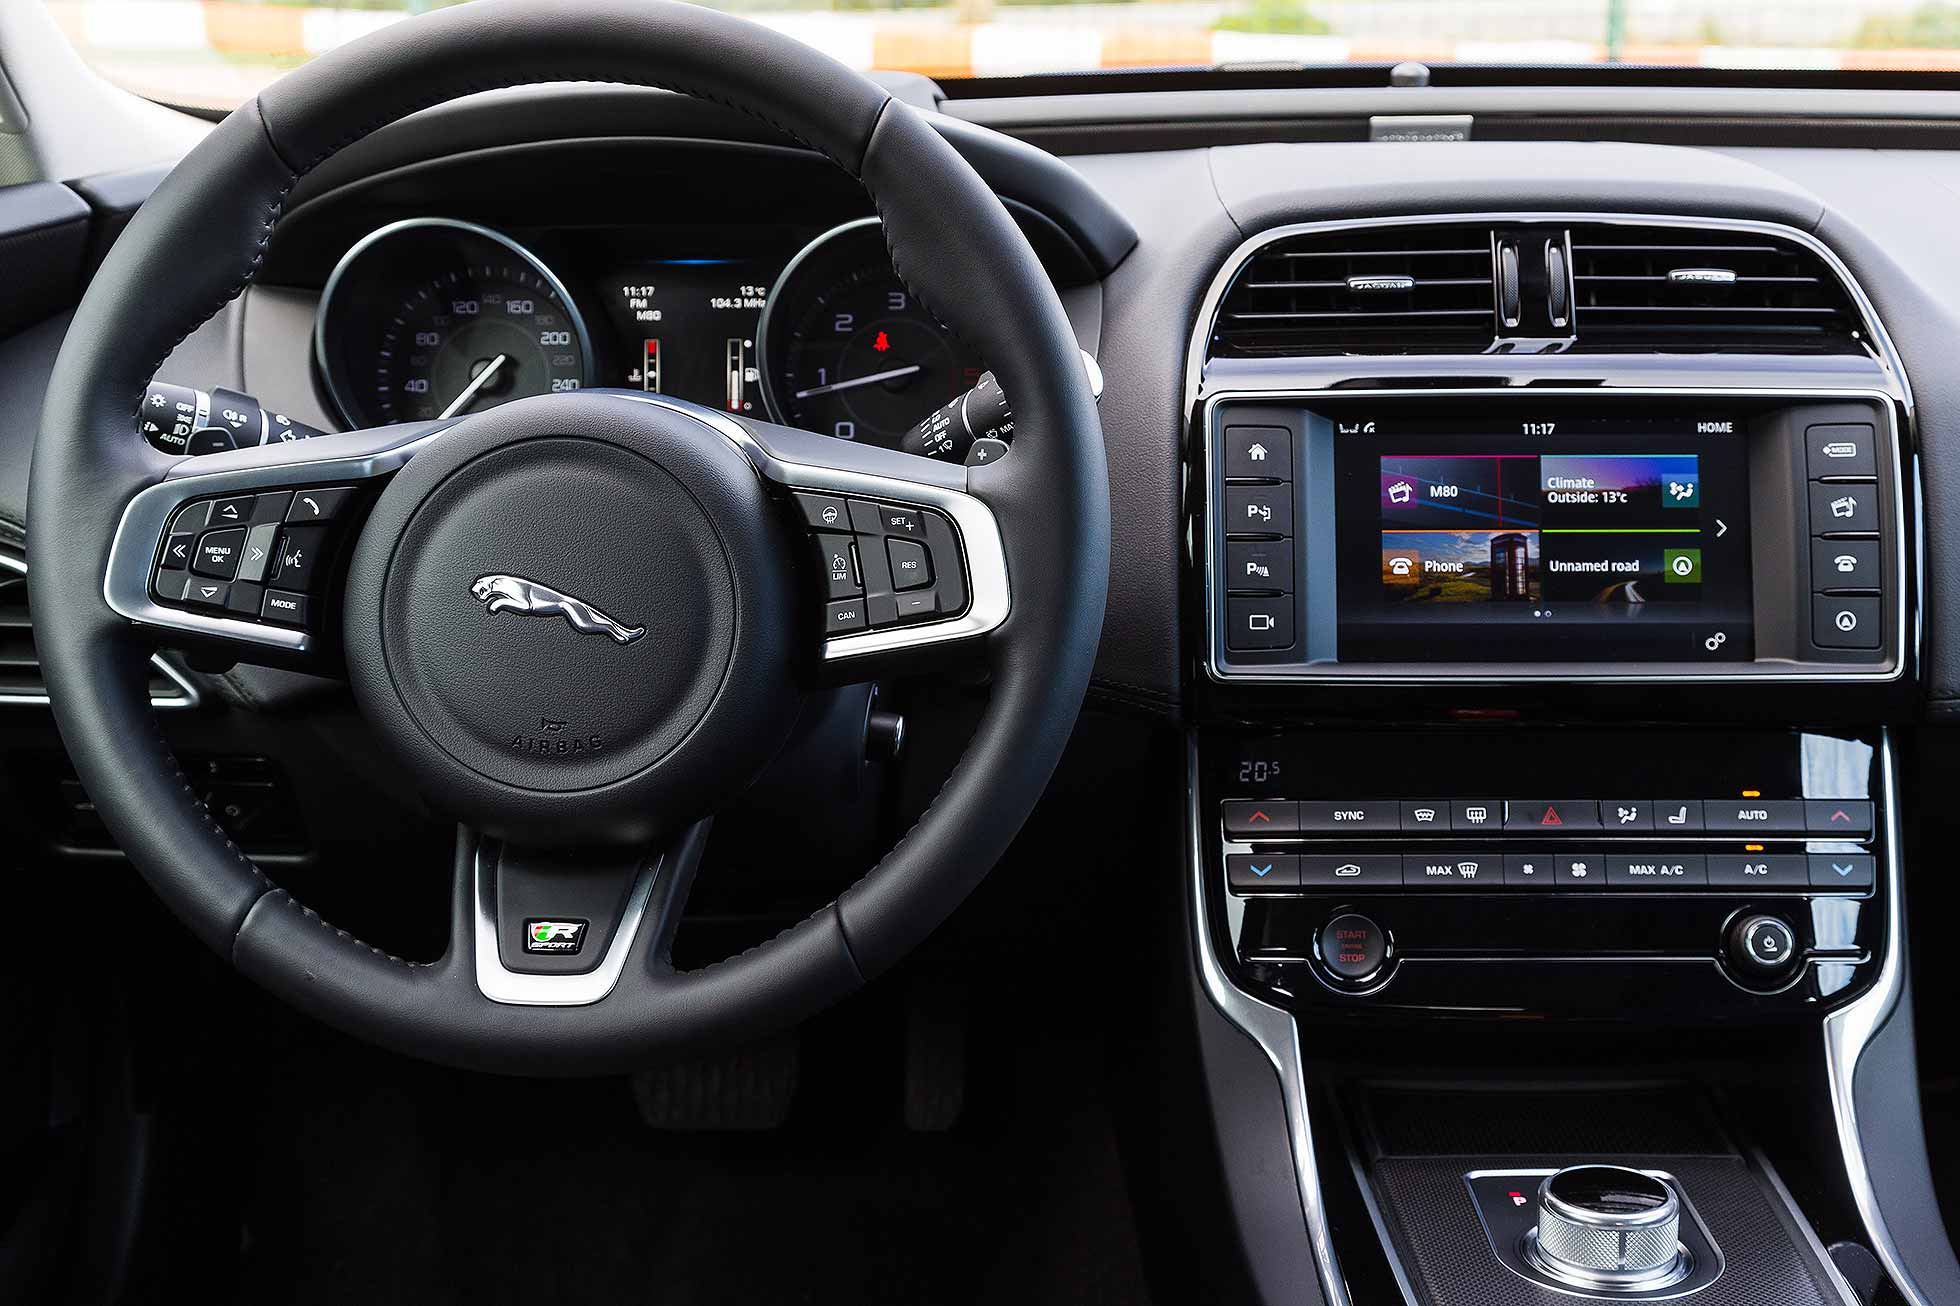 amusing-design-of-the-black-dash-ideas-with-black-steering-wheels-ideas-as-the-jaguar-xe-2015-interior